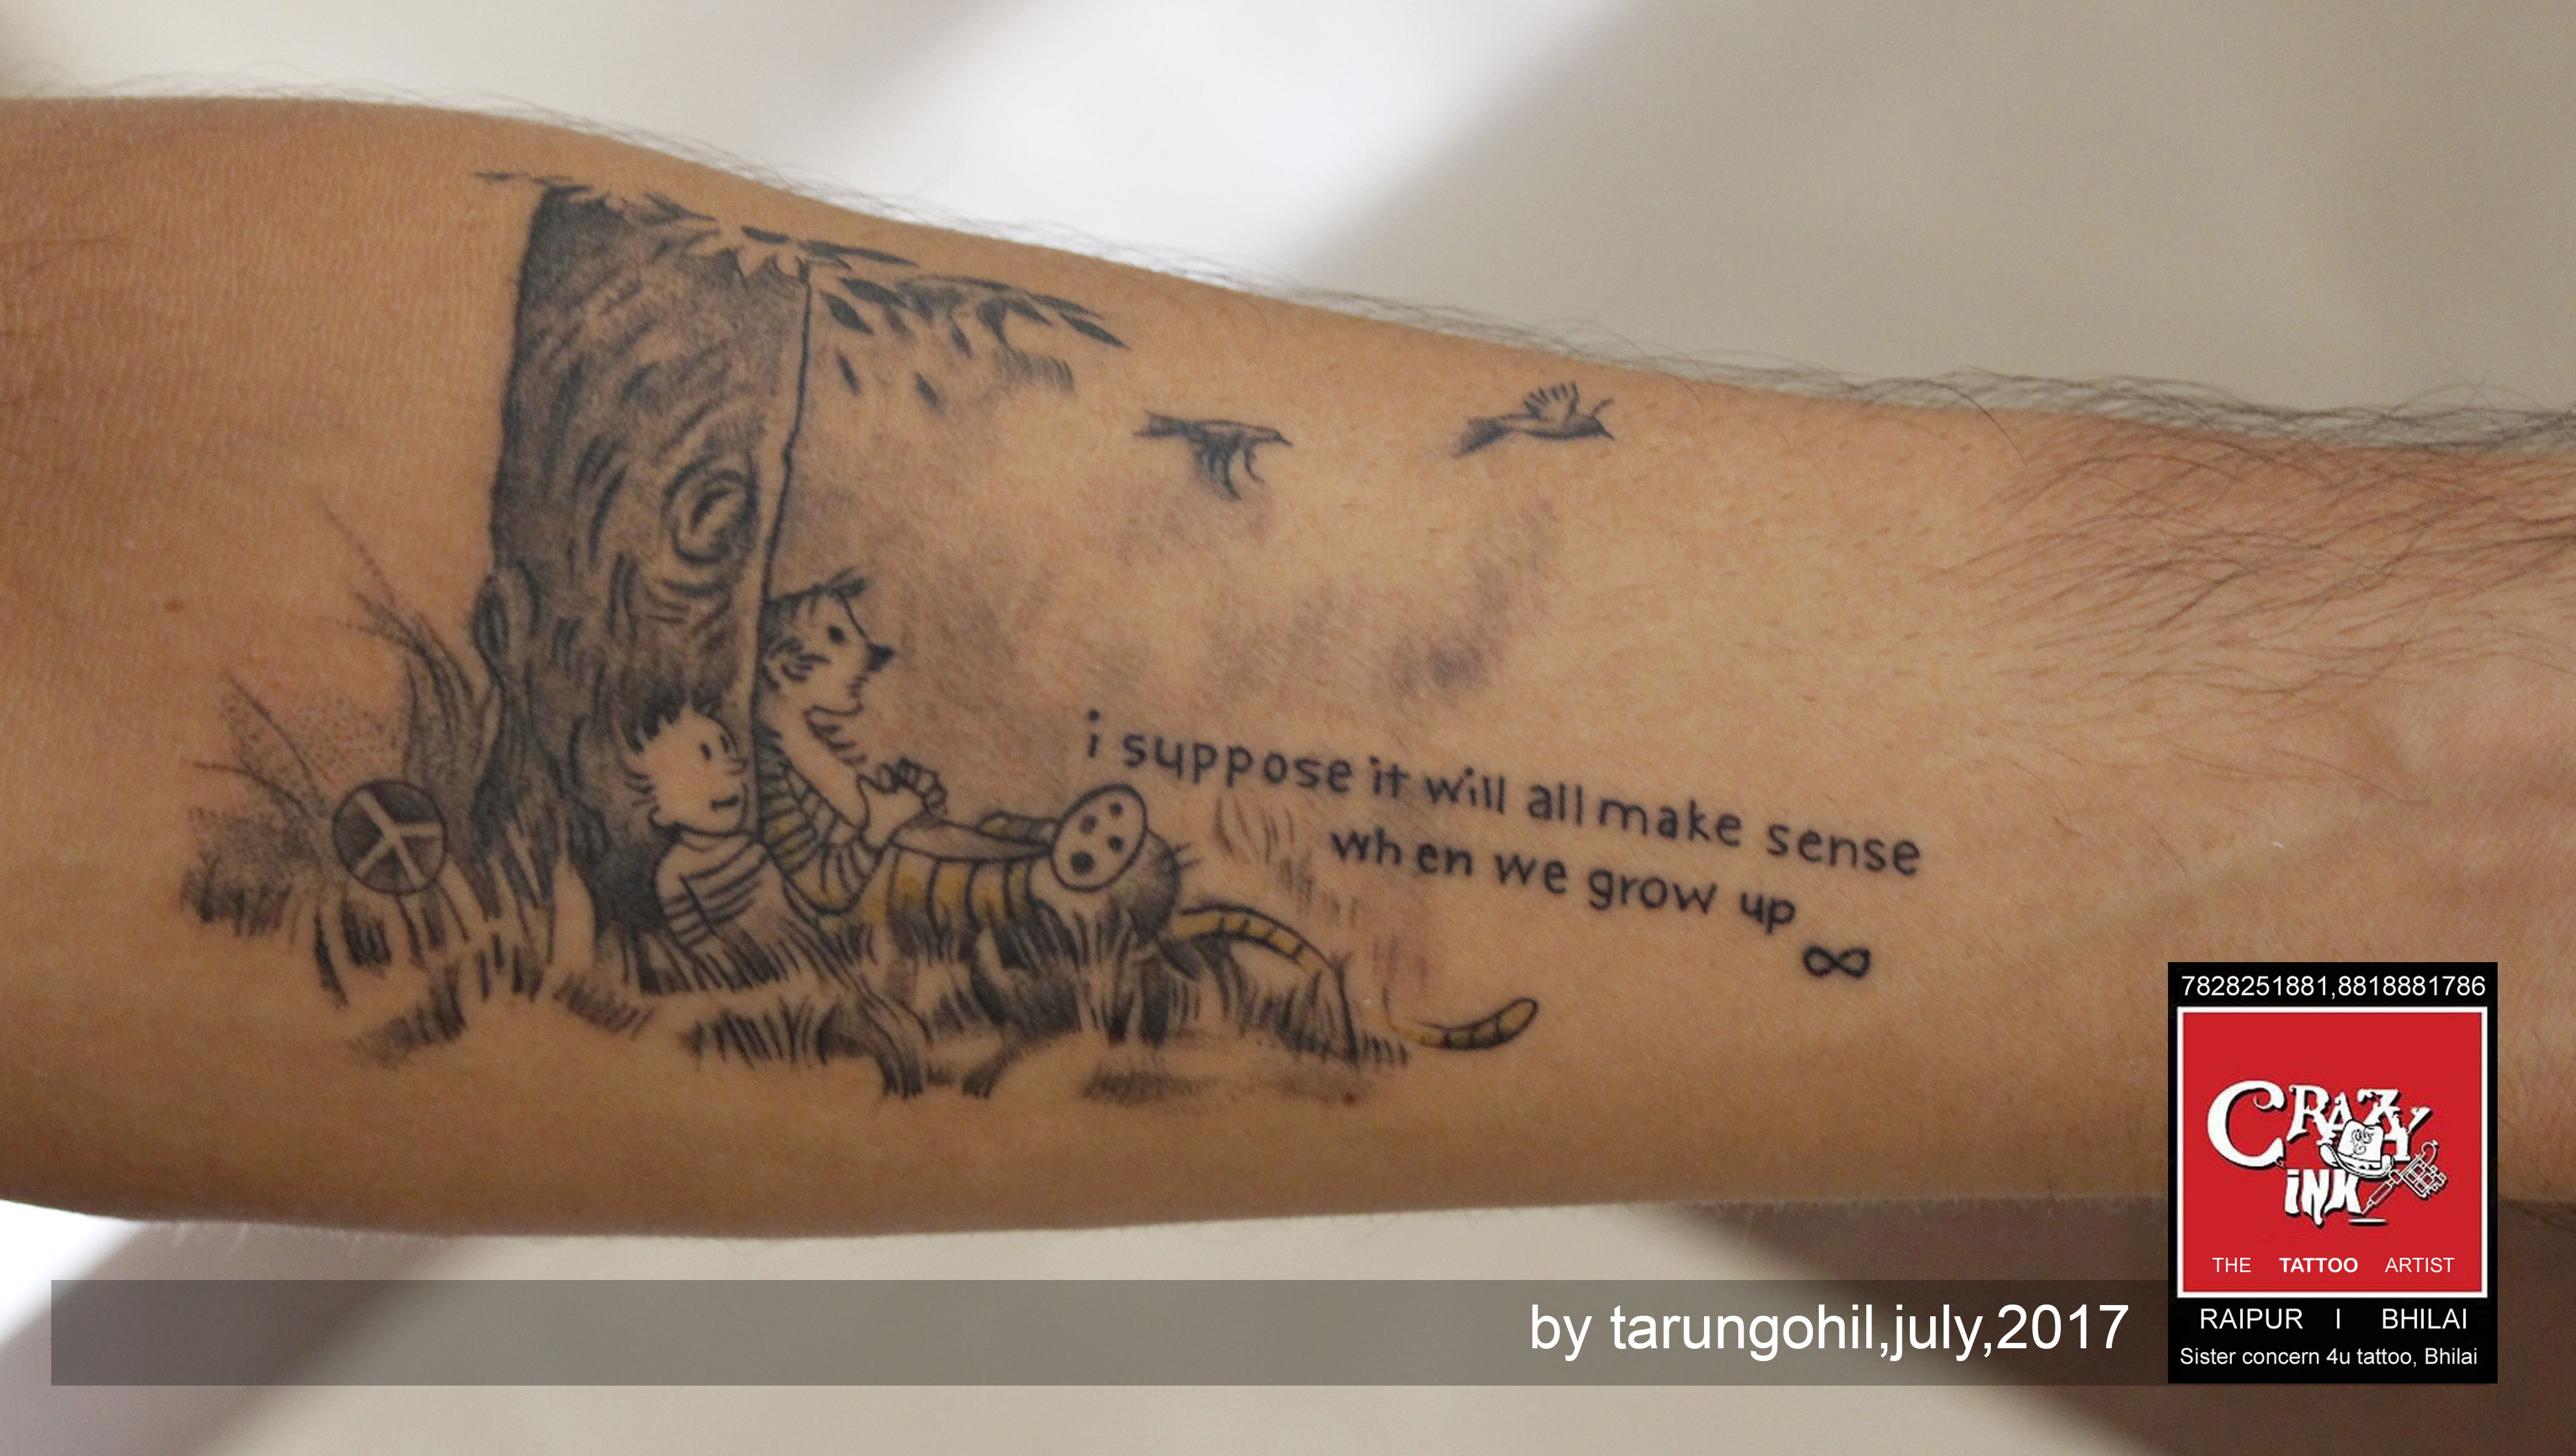 This Quotes Of Clivin And Hobbies Serious I Suppose It Will All Make Sense When We Grow Up Artist By Tarun Gohil A Ink Tattoo Tattoos Tattoo Work